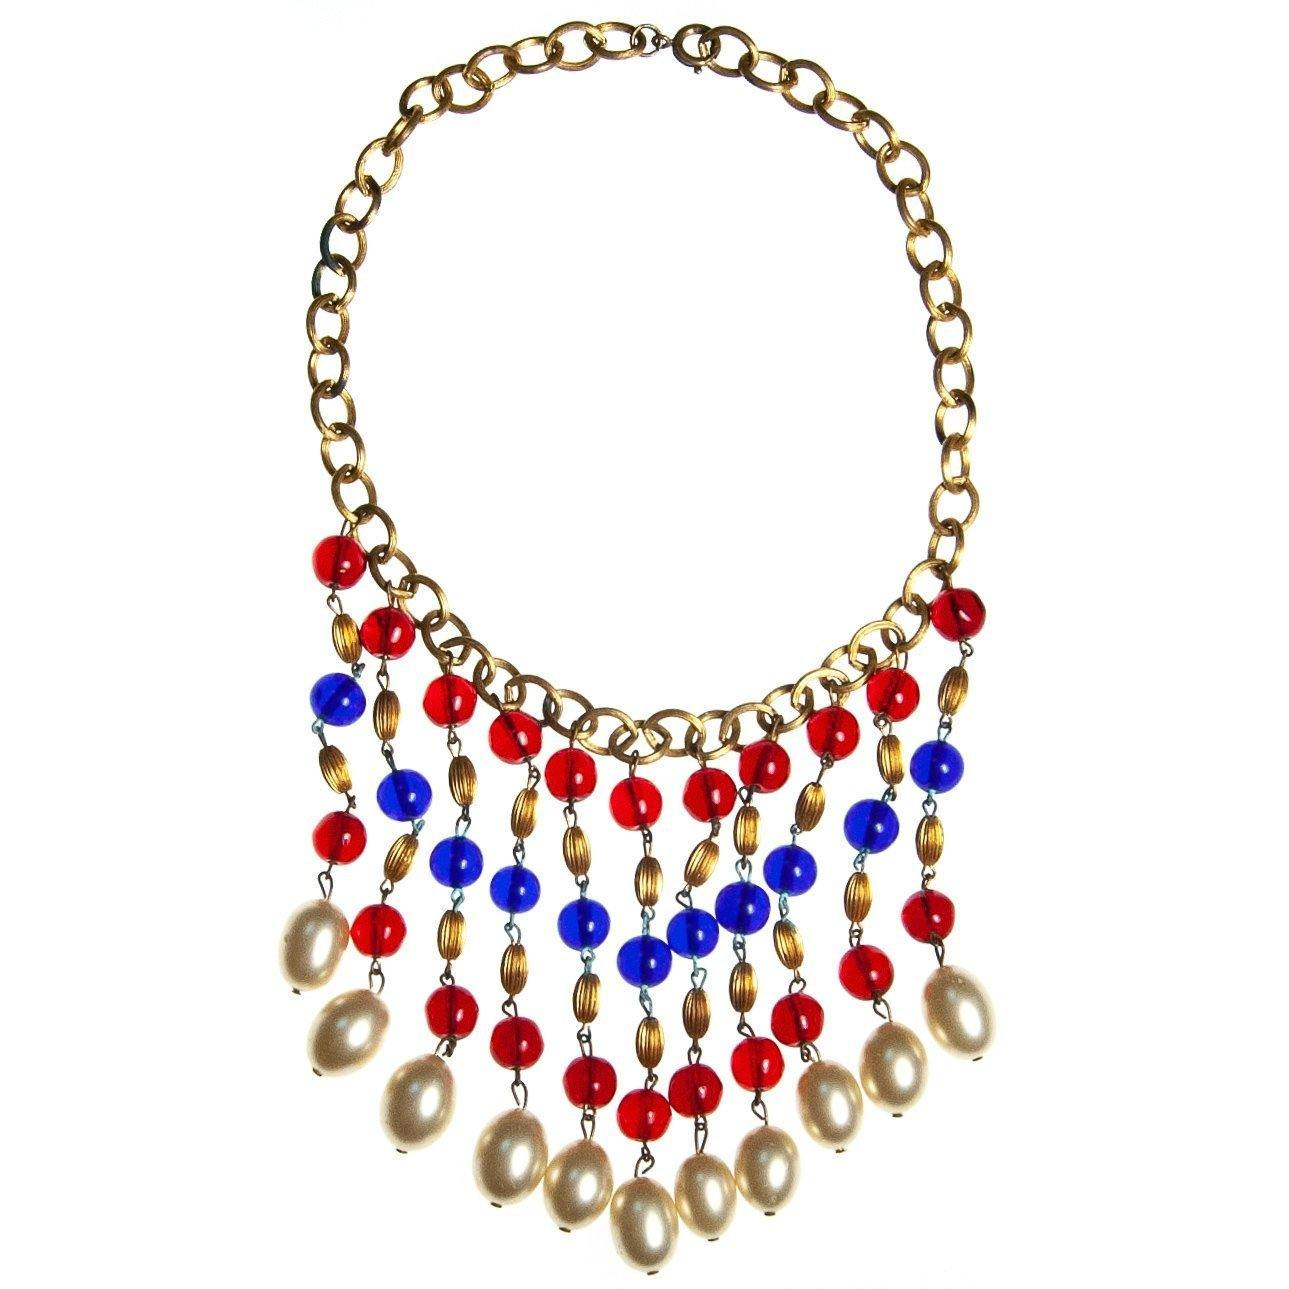 e6ed6017e0ace Vintage Czech Red, Blue Gripoix and Faux Pearl Bib Tassel Necklace ...